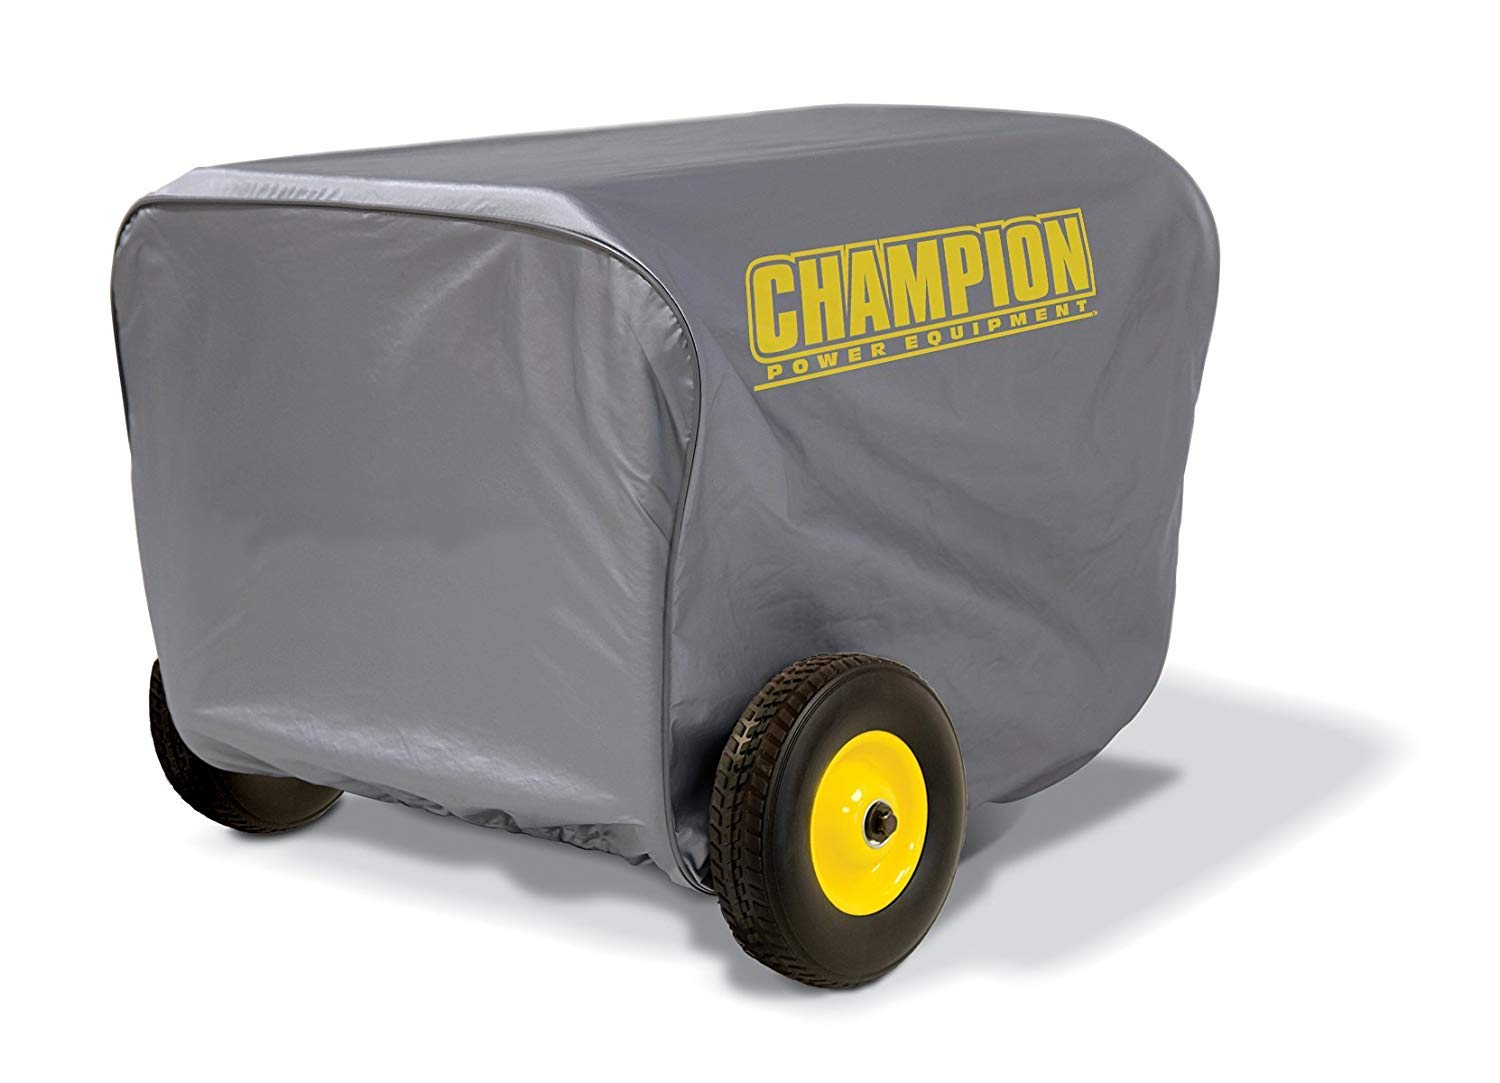 Champion Weather-Resistant Storage Cover for 4800-11,500-Watt Portable Generators (Premium Cover for Generators)